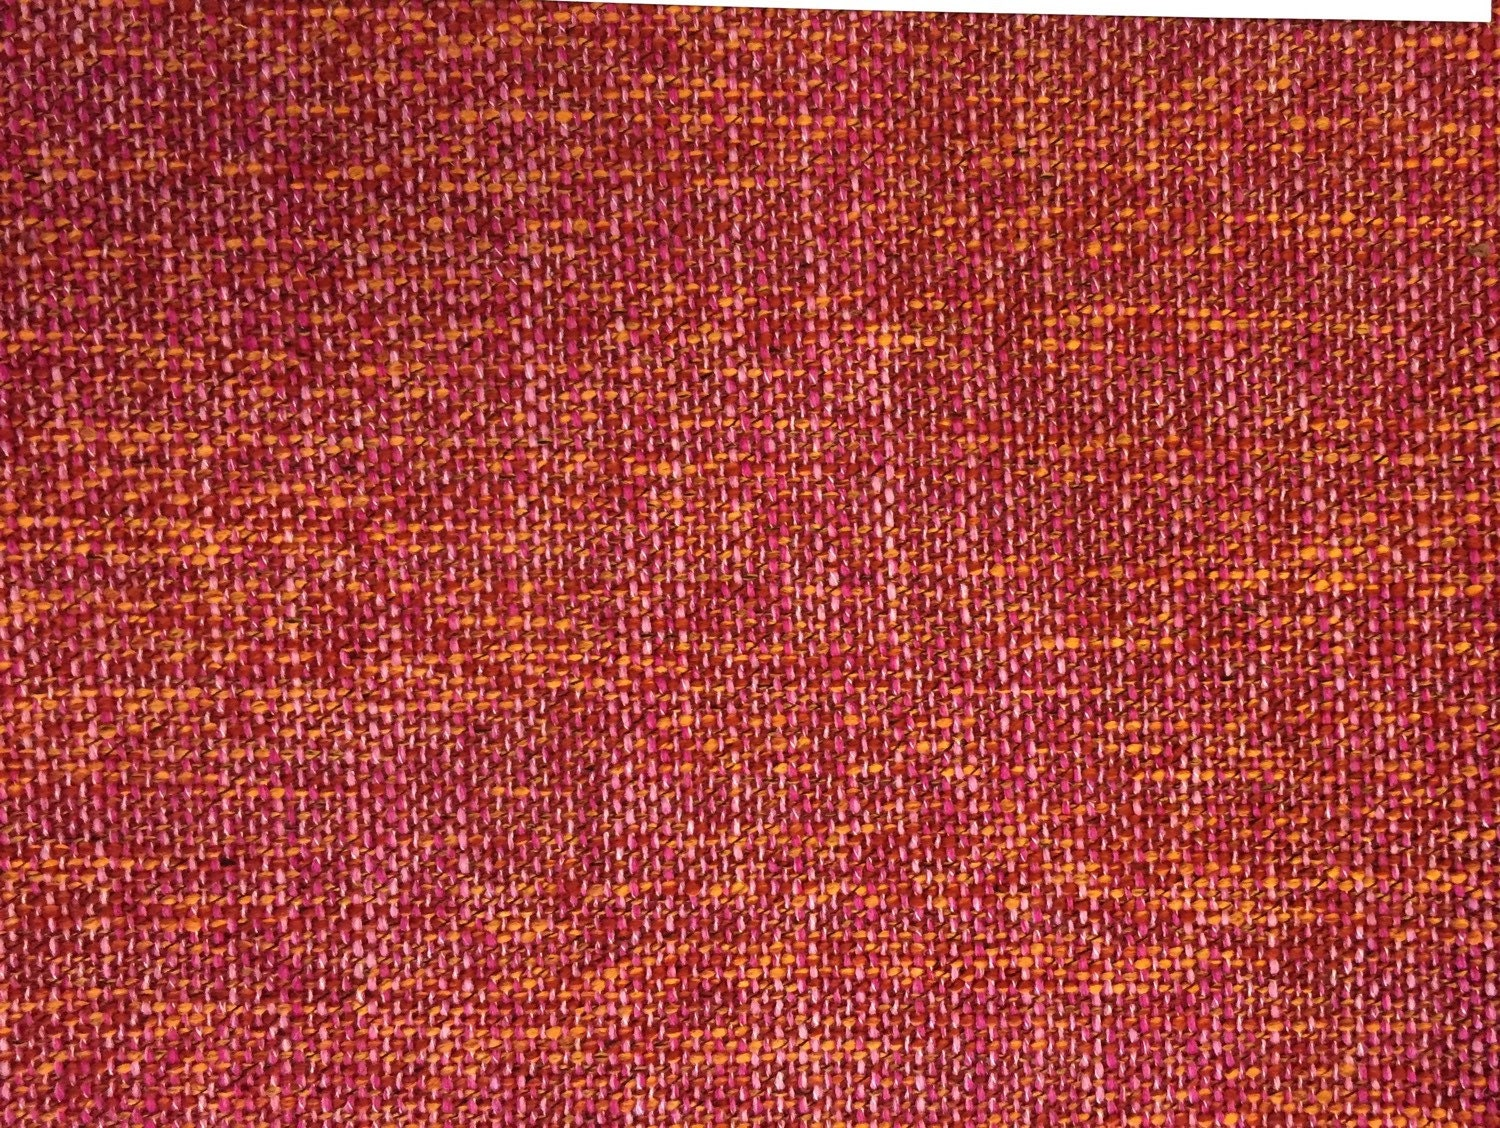 Raspberry Orange Woven Upholstery Fabric Upholstery Fabric